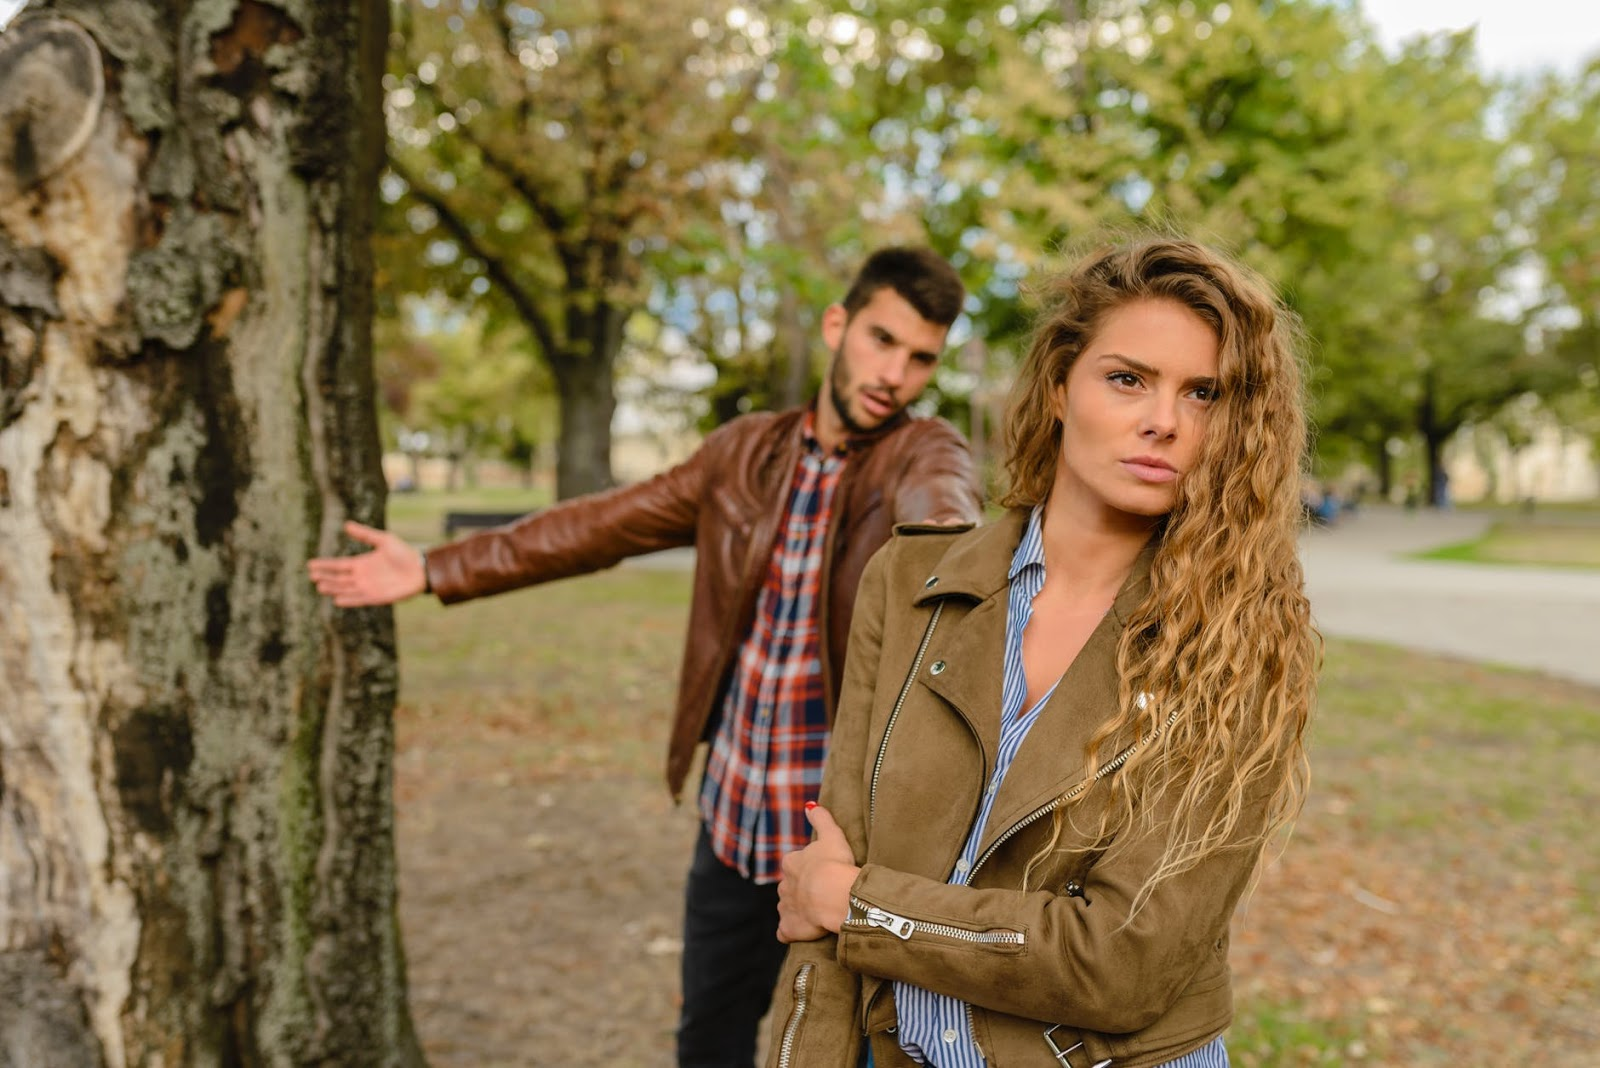 A man and a woman stand by a tree in the park while in a confrontation